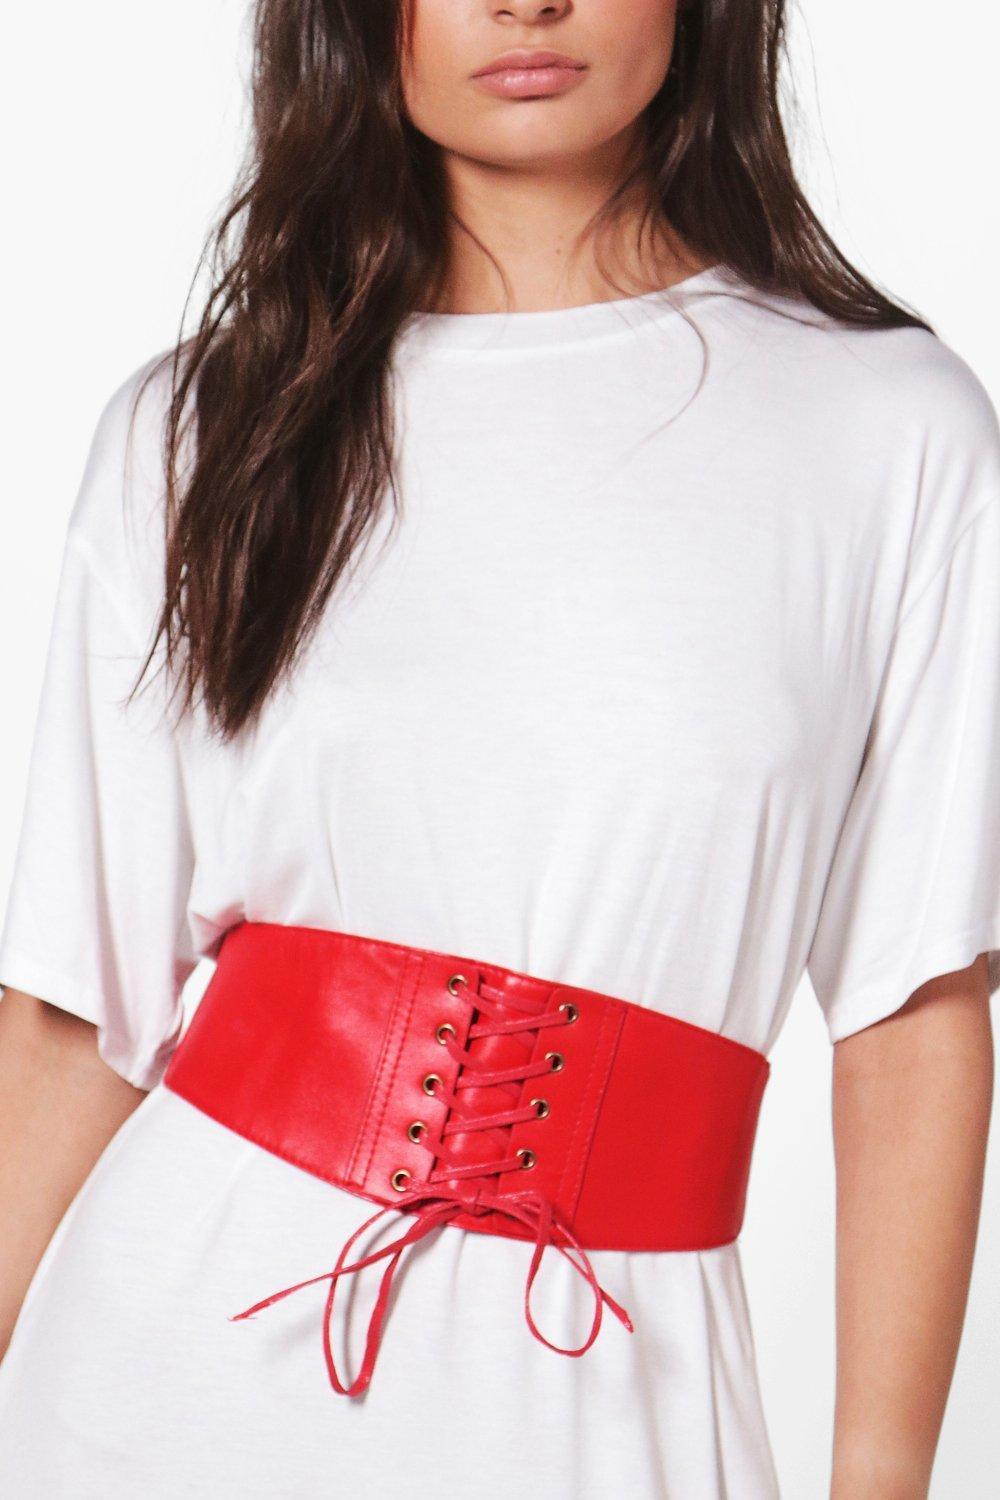 PU Lace Up Corset Belt - red - Maisie PU Lace Up C